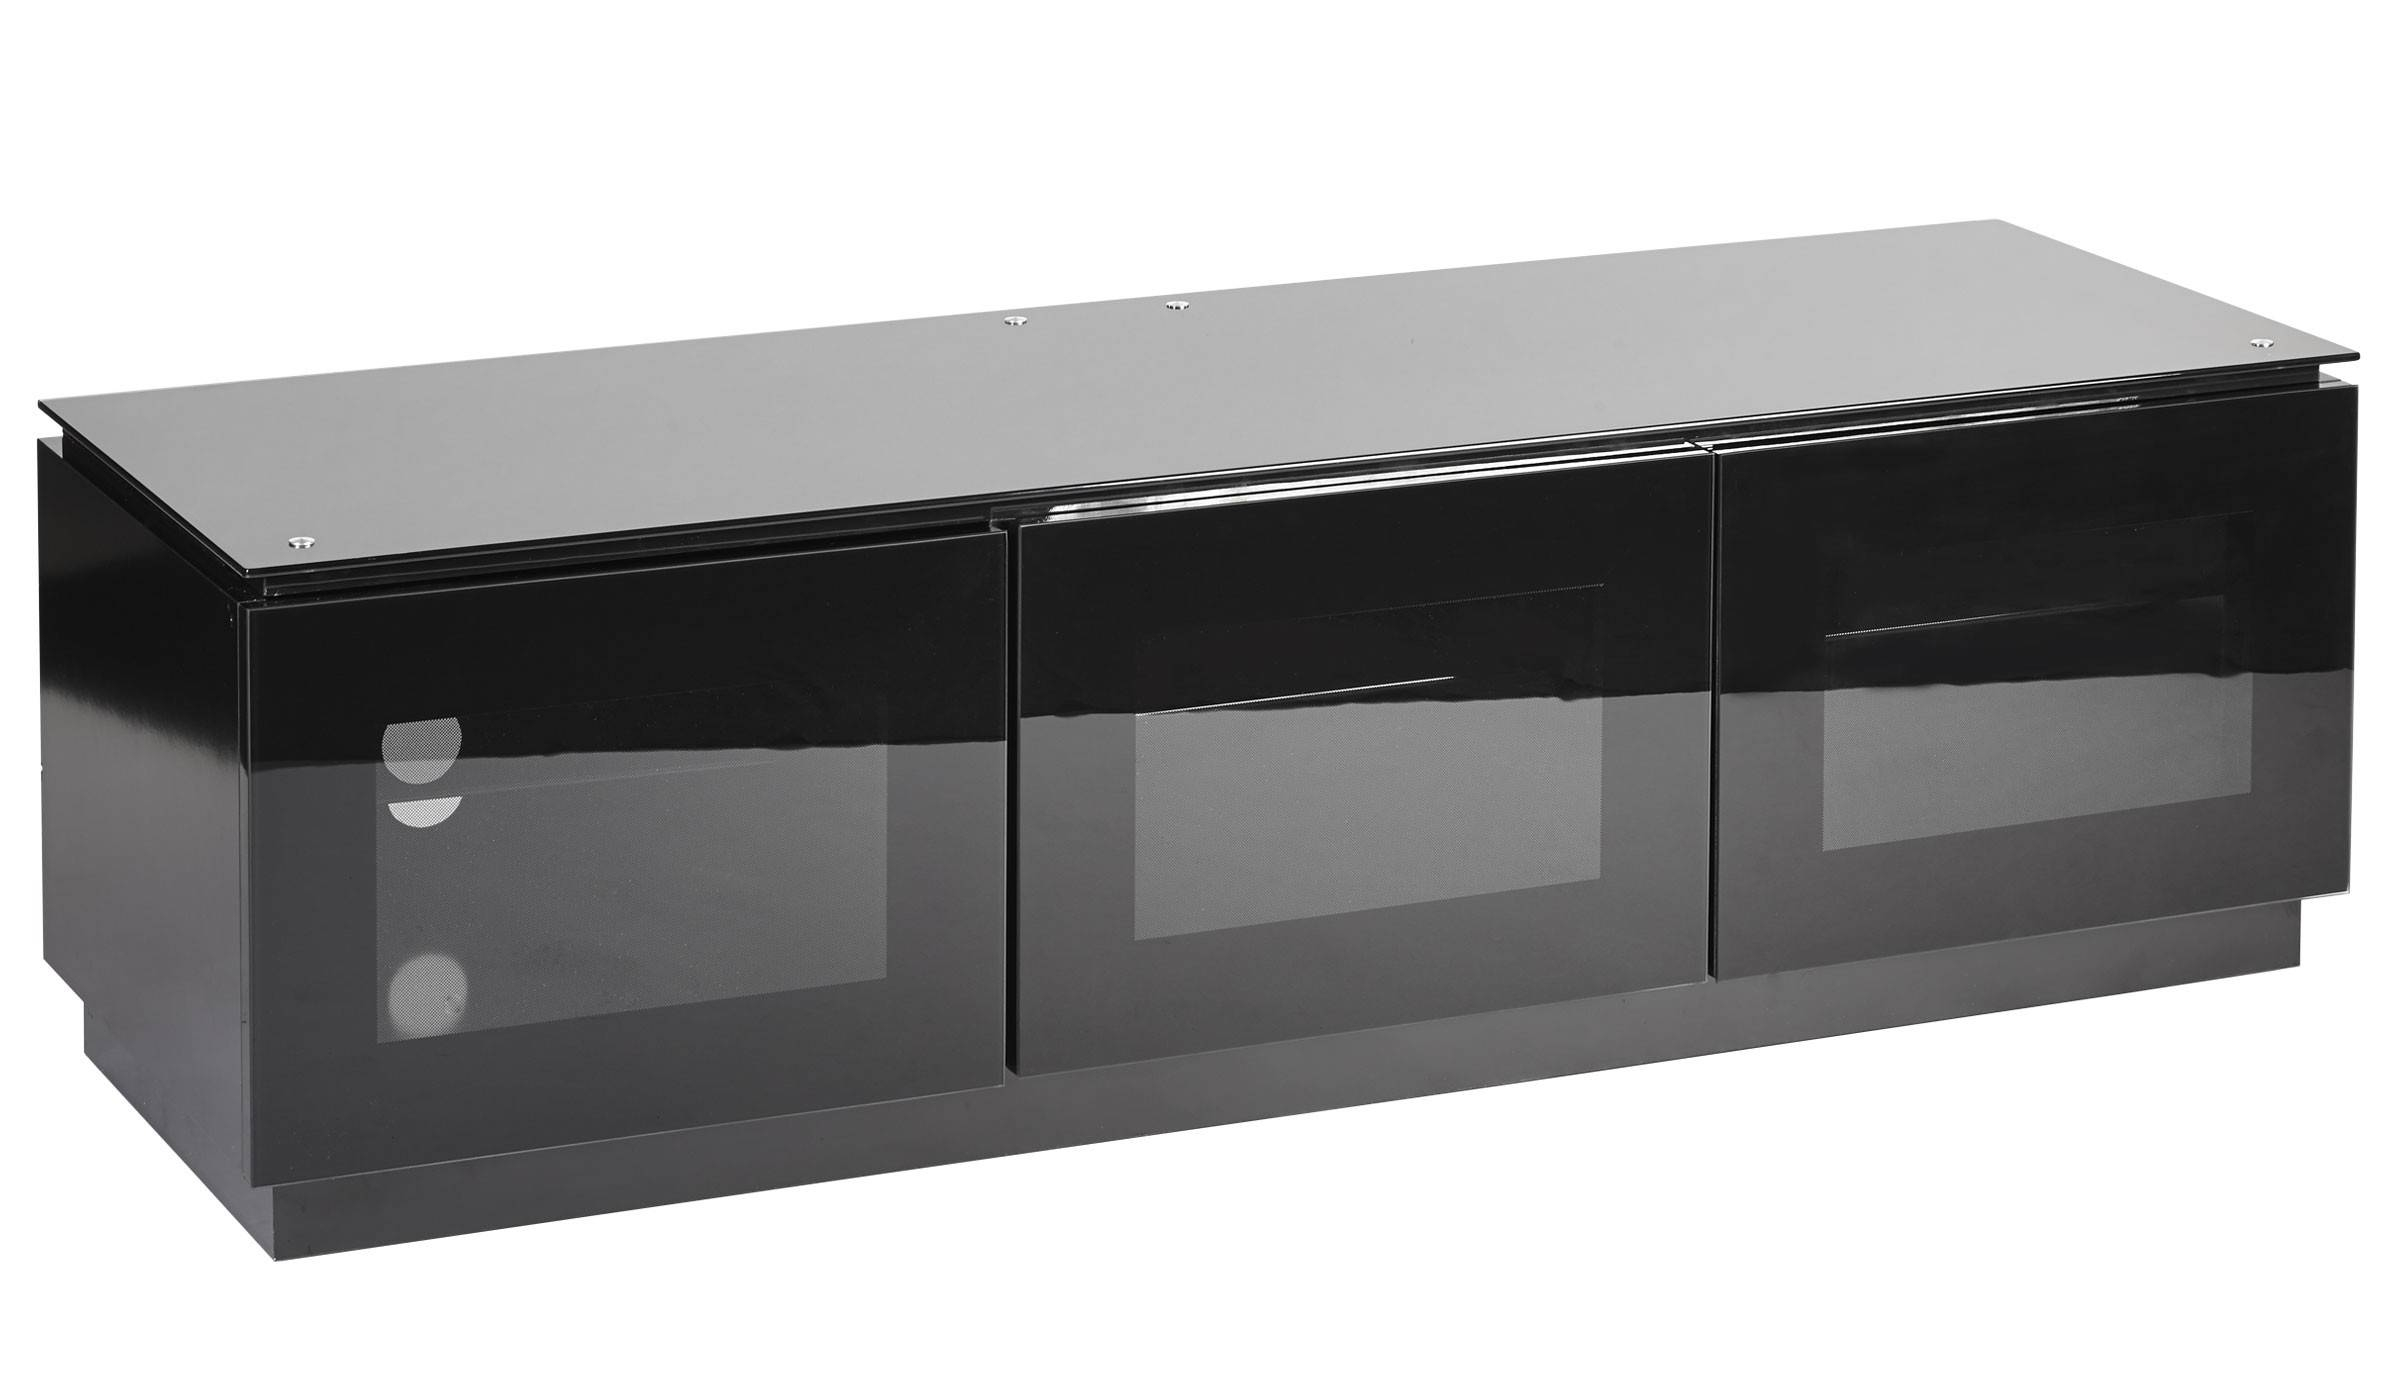 Black Gloss Tv Unit Up To 65 Inch Flat Tv | Mmt-D1500 within Black Gloss Tv Cabinet (Image 4 of 15)